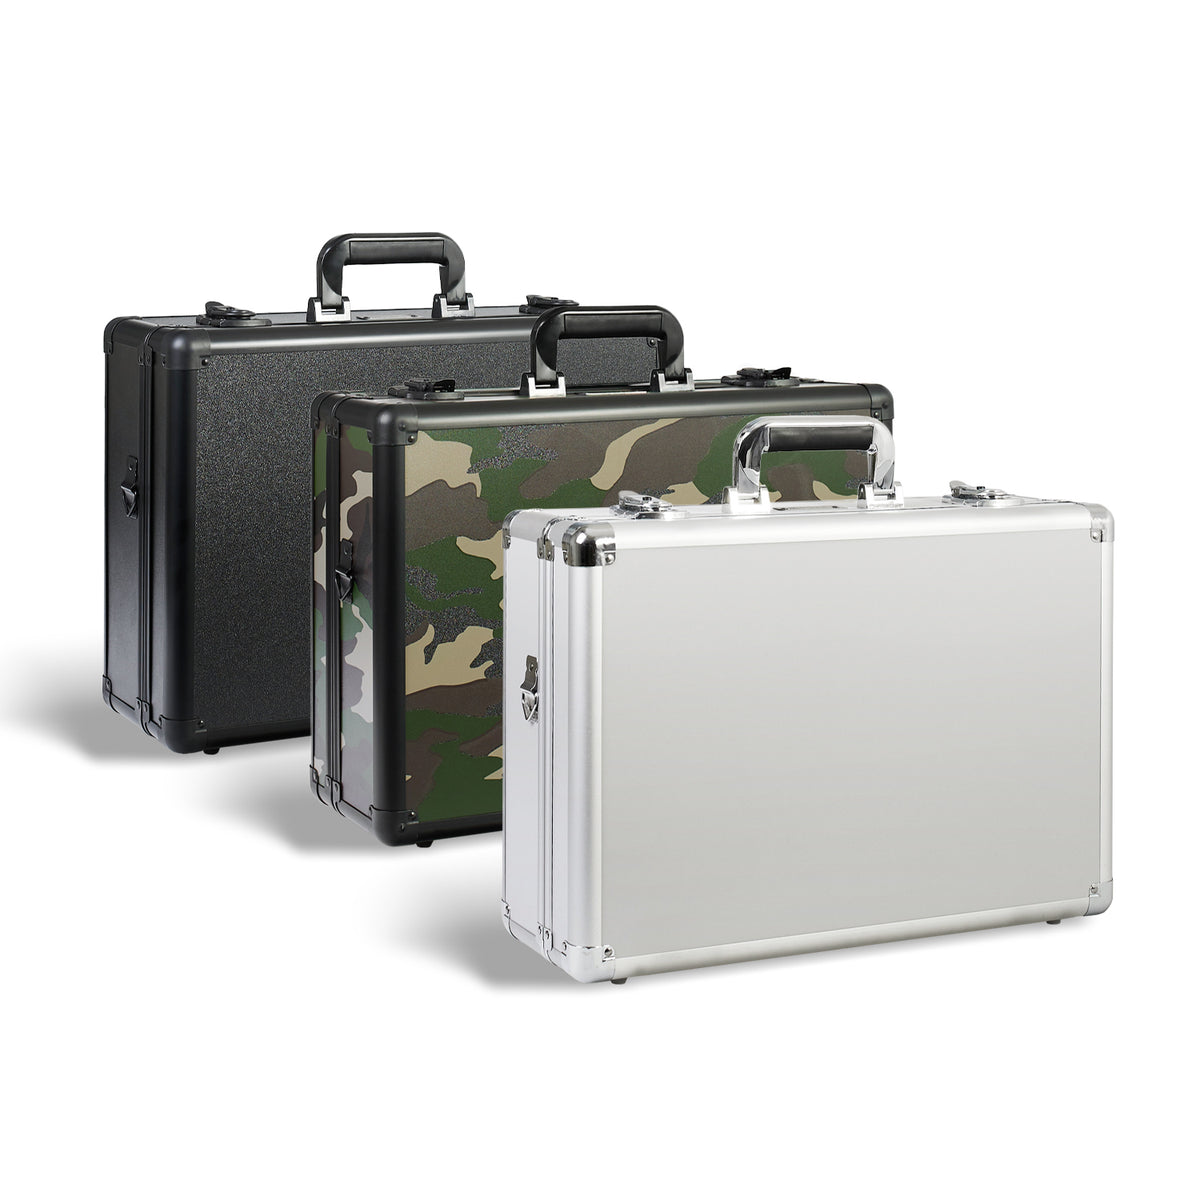 iHip: Portable Entertainment. Zeikos Deluxe Hard-Shell Protective Versatile Storage Case. Use for cameras, equipment, gaming consoles, guns, travel gear, trading cards, carryons, air-travel, road trips, and more!